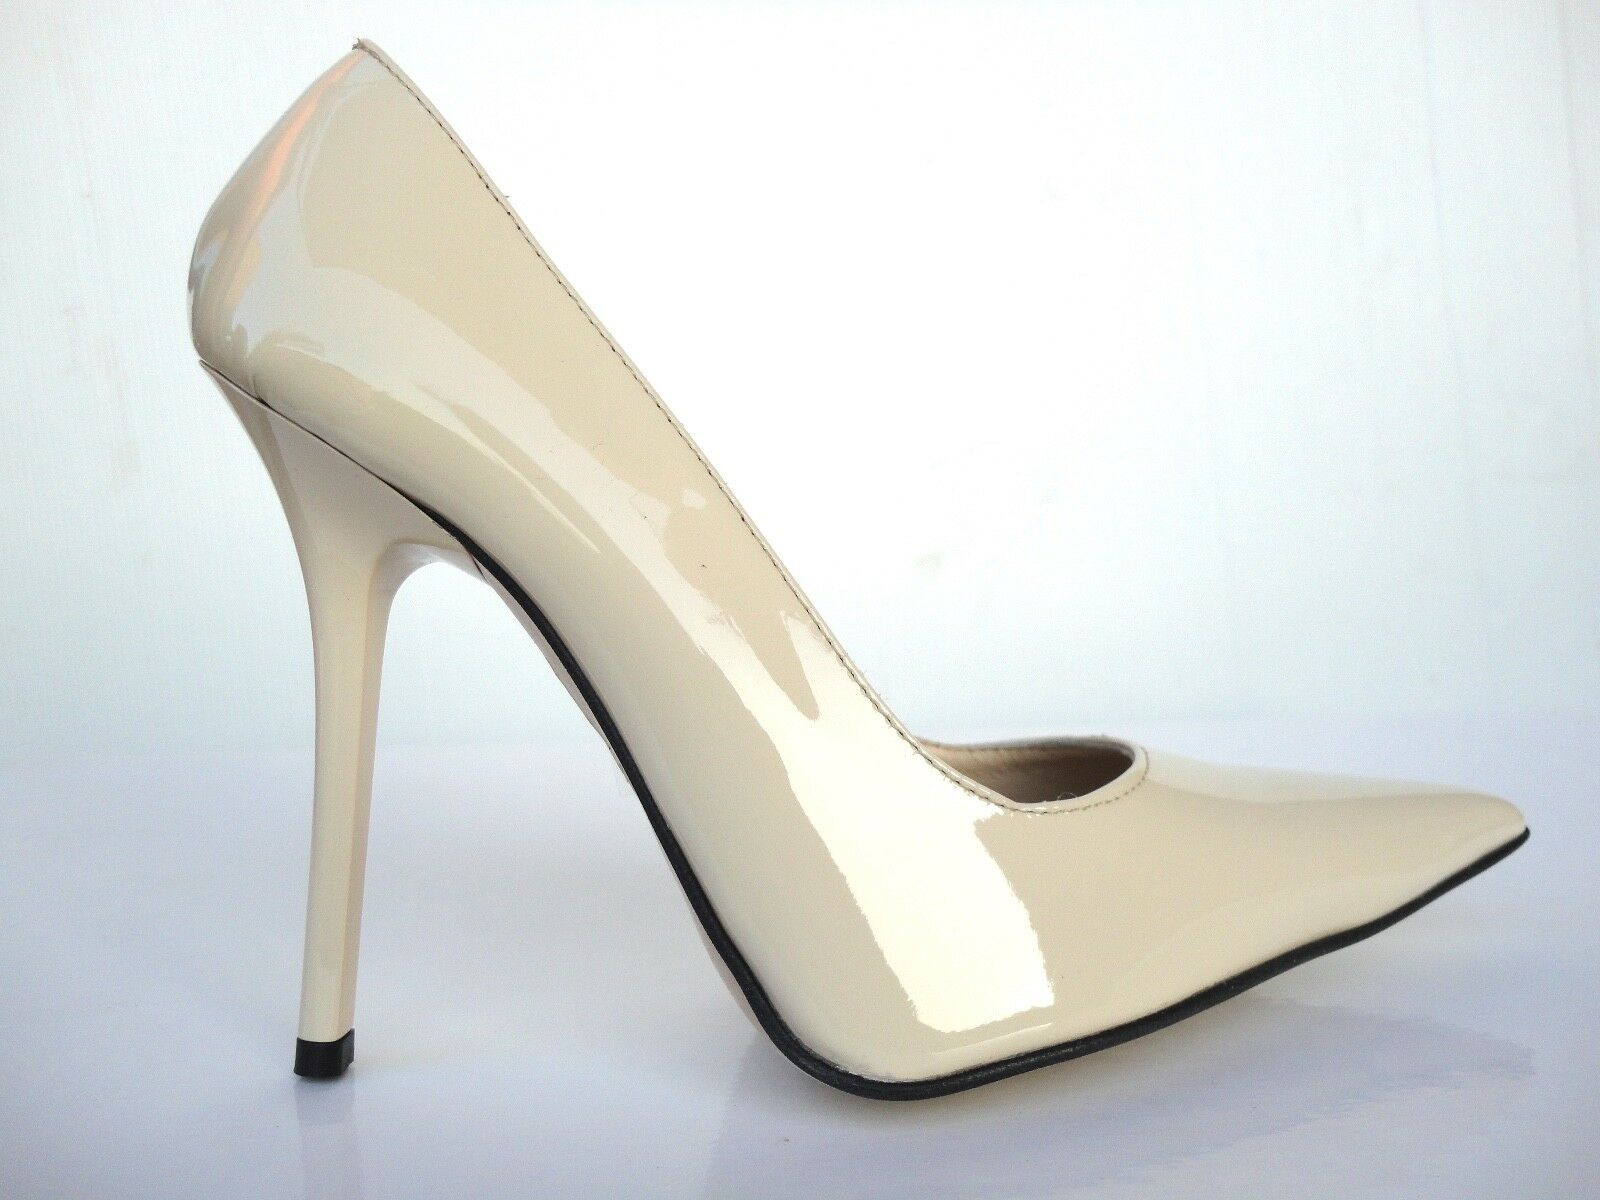 MADE IN ITALY LUXUS HAND HAND HAND MADE HIGH HEELS POINTY PUMPS SCHUHE LEDER BEIGE NUDE 42 c80f2a